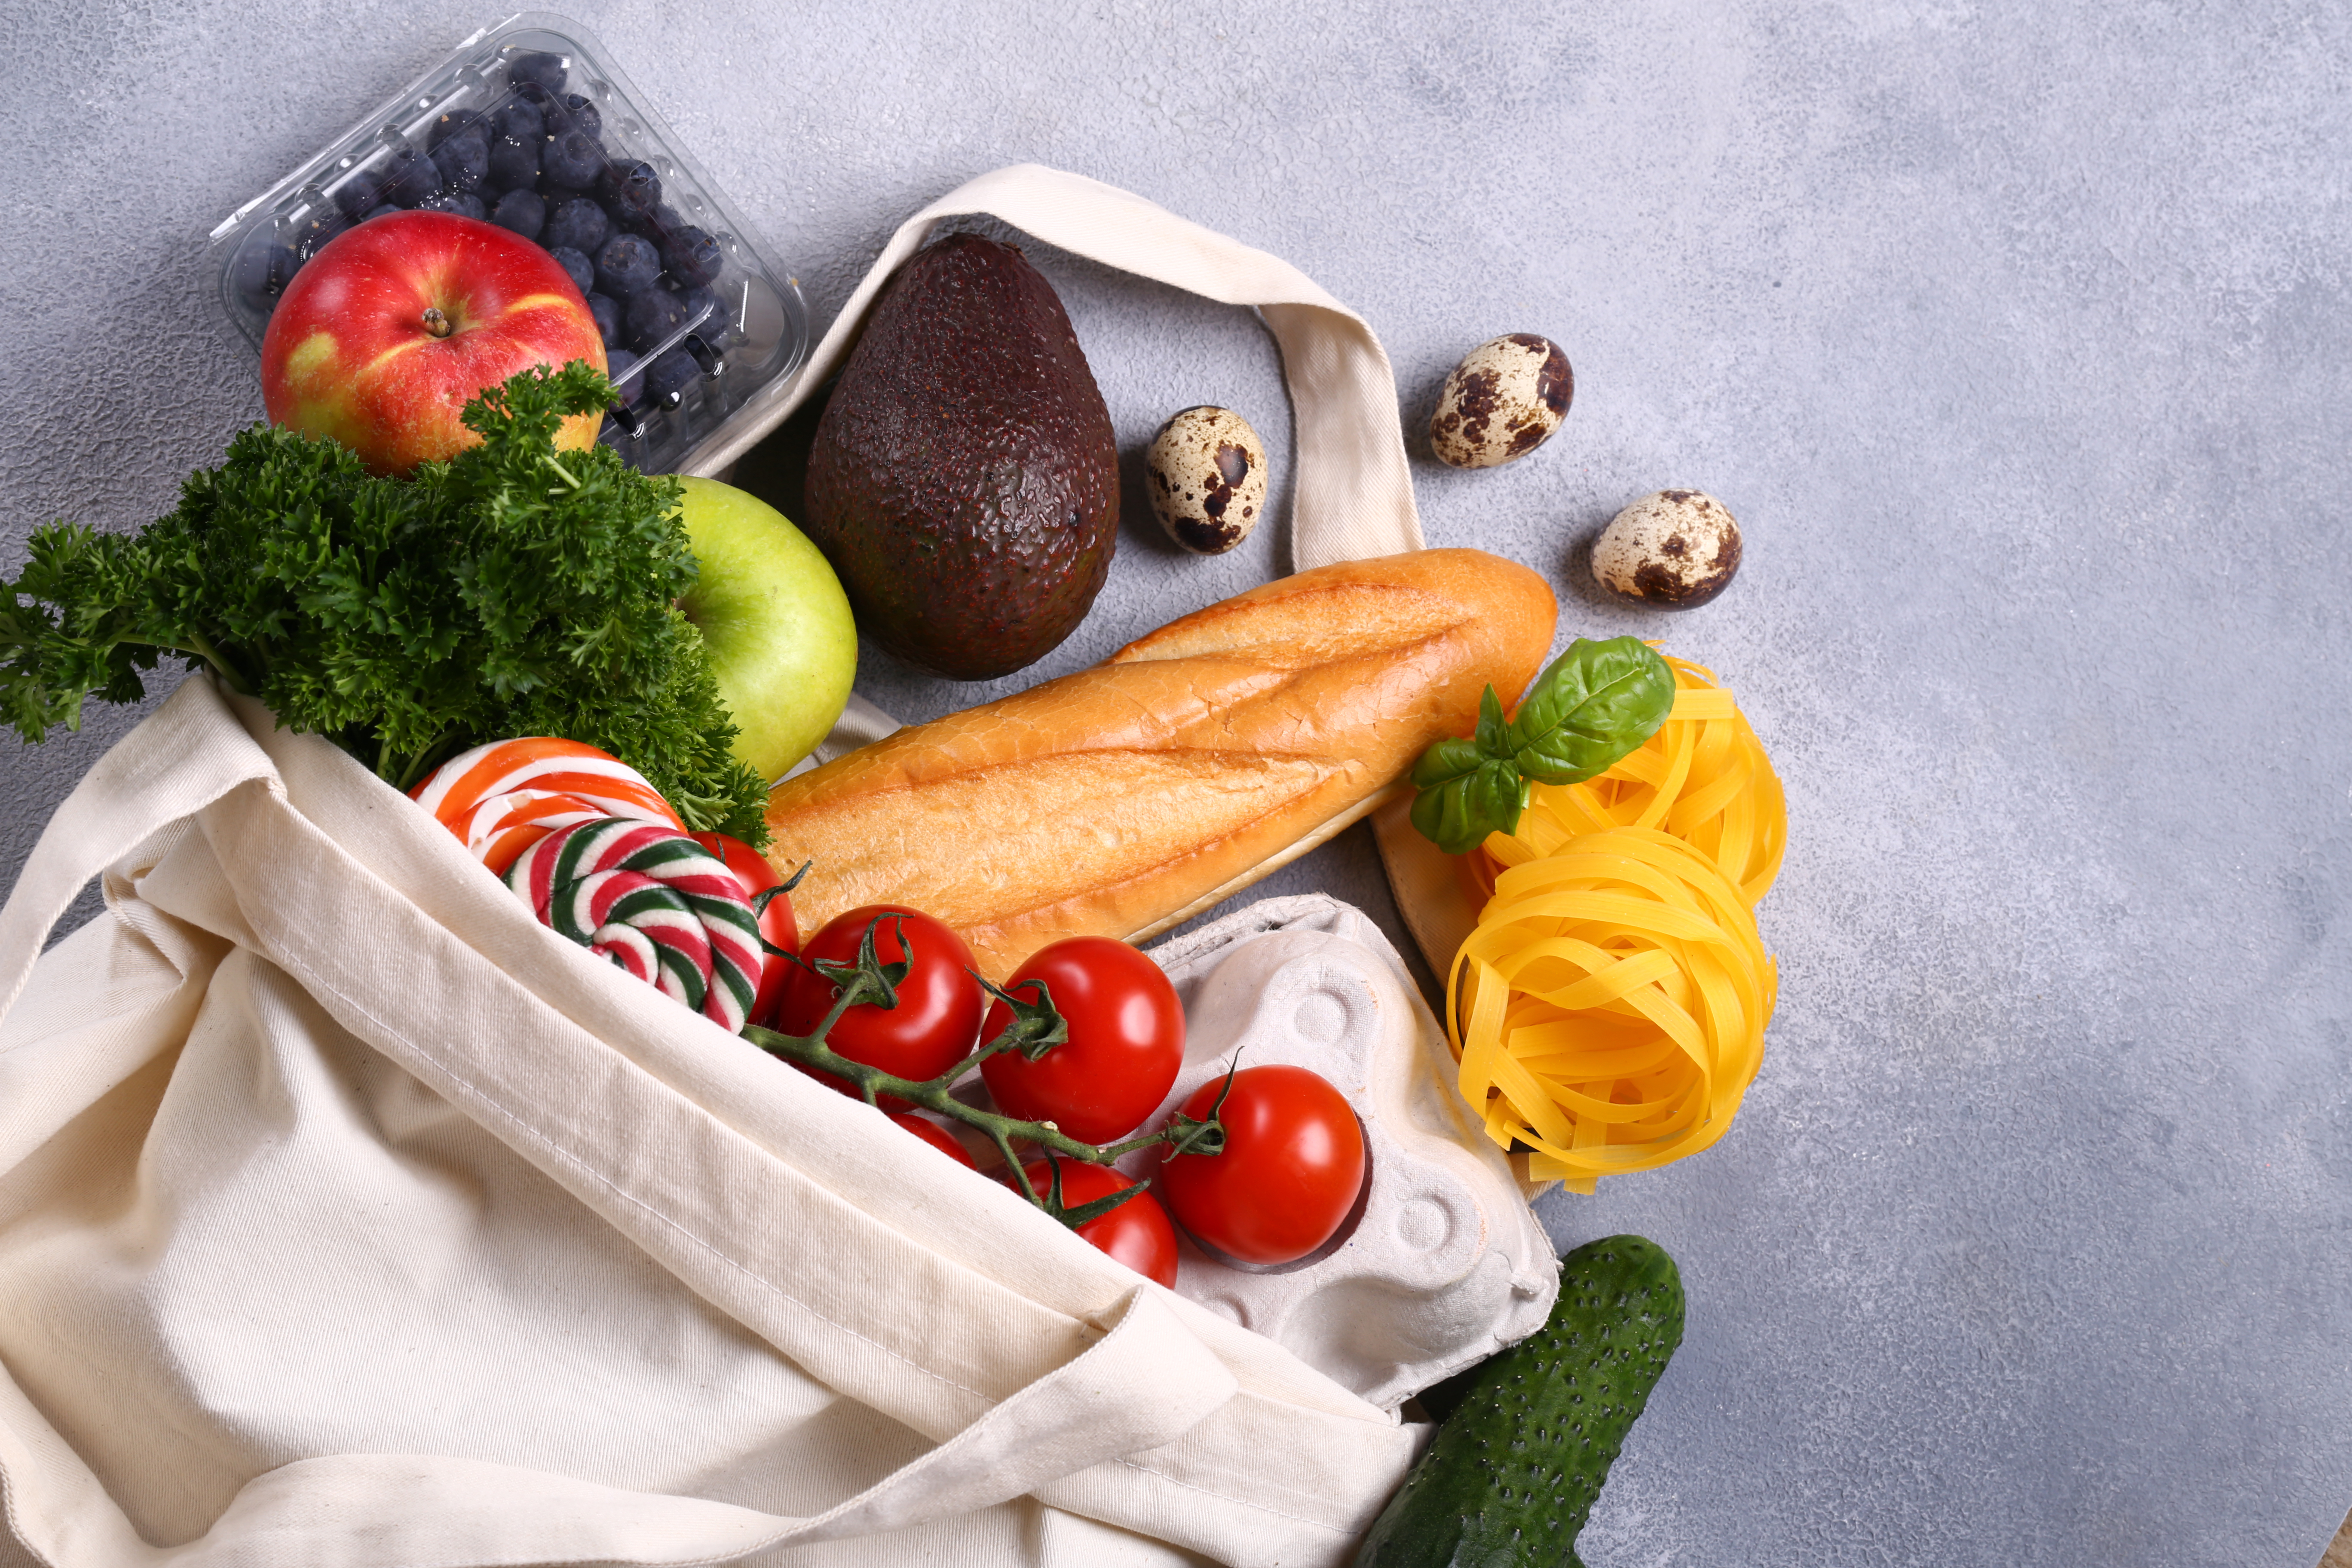 Canva - Vegetables Fruits and Produce in a Shopping Bag (1)